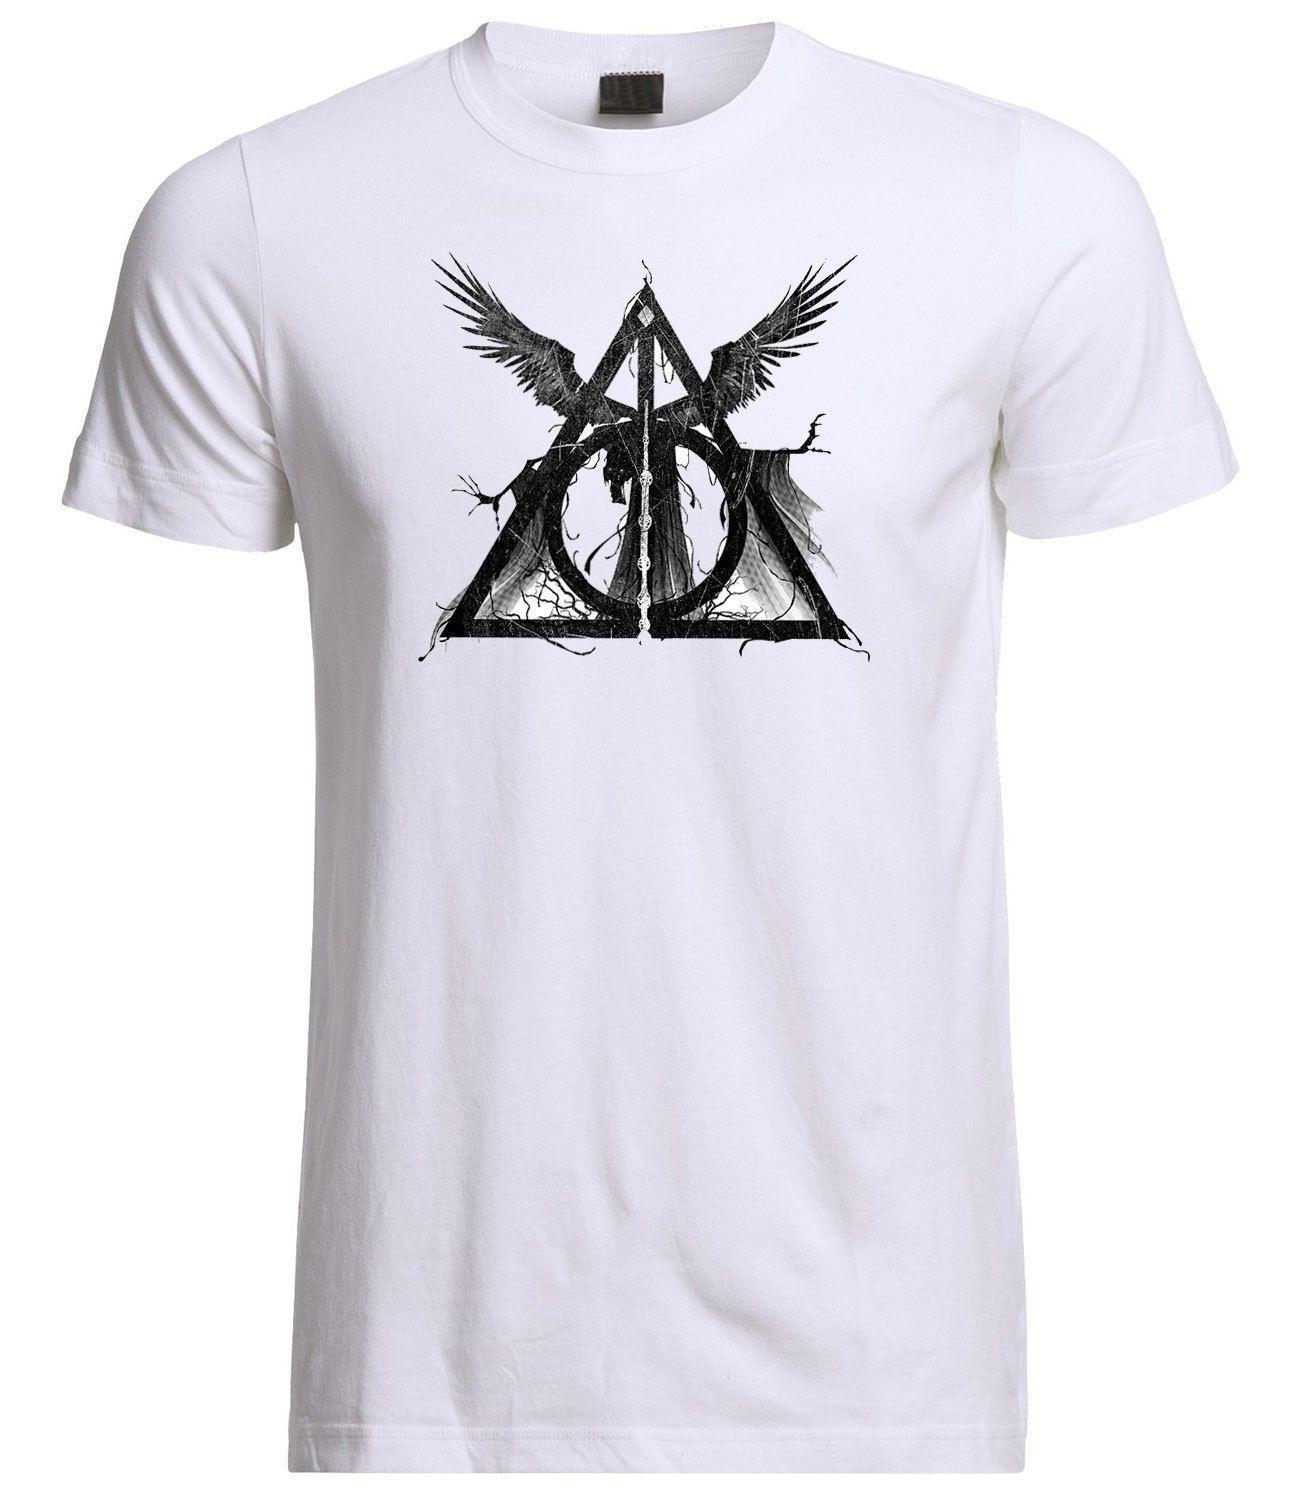 c4433f225 Deathly Hallows Harry Potter Inspired Three Brothers T Shirt Shirts For Men  Shirt Design From Valuebuy, $11.01| DHgate.Com